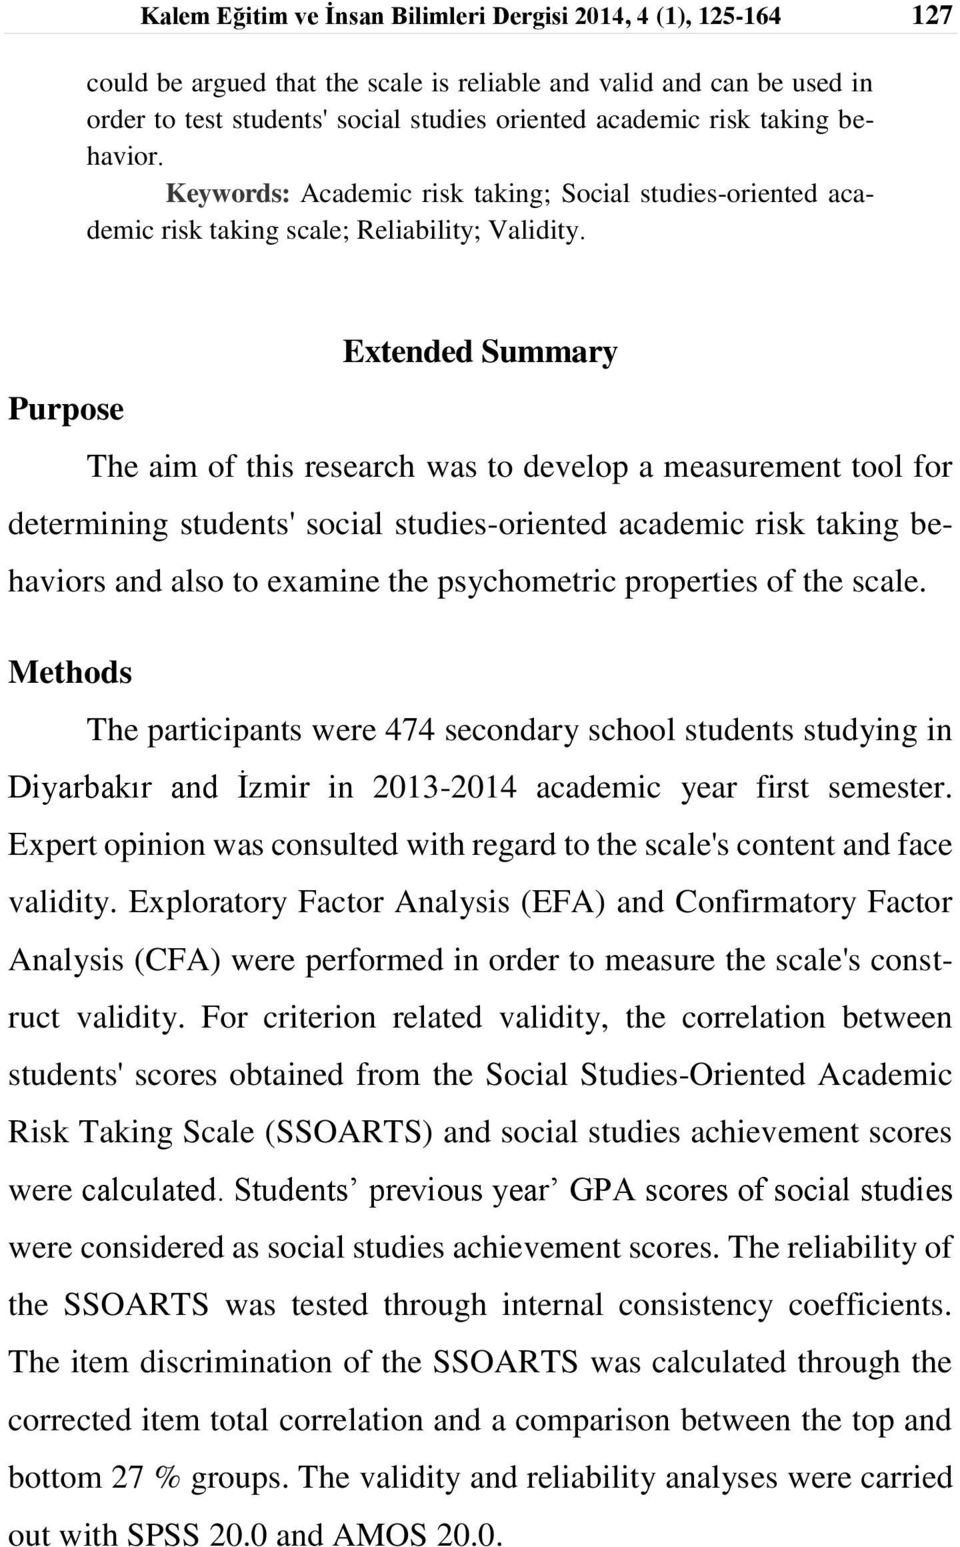 measurement tool for determining students' social studies-oriented academic risk taking behaviors and also to examine the psychometric properties of the scale Methods The participants were 474